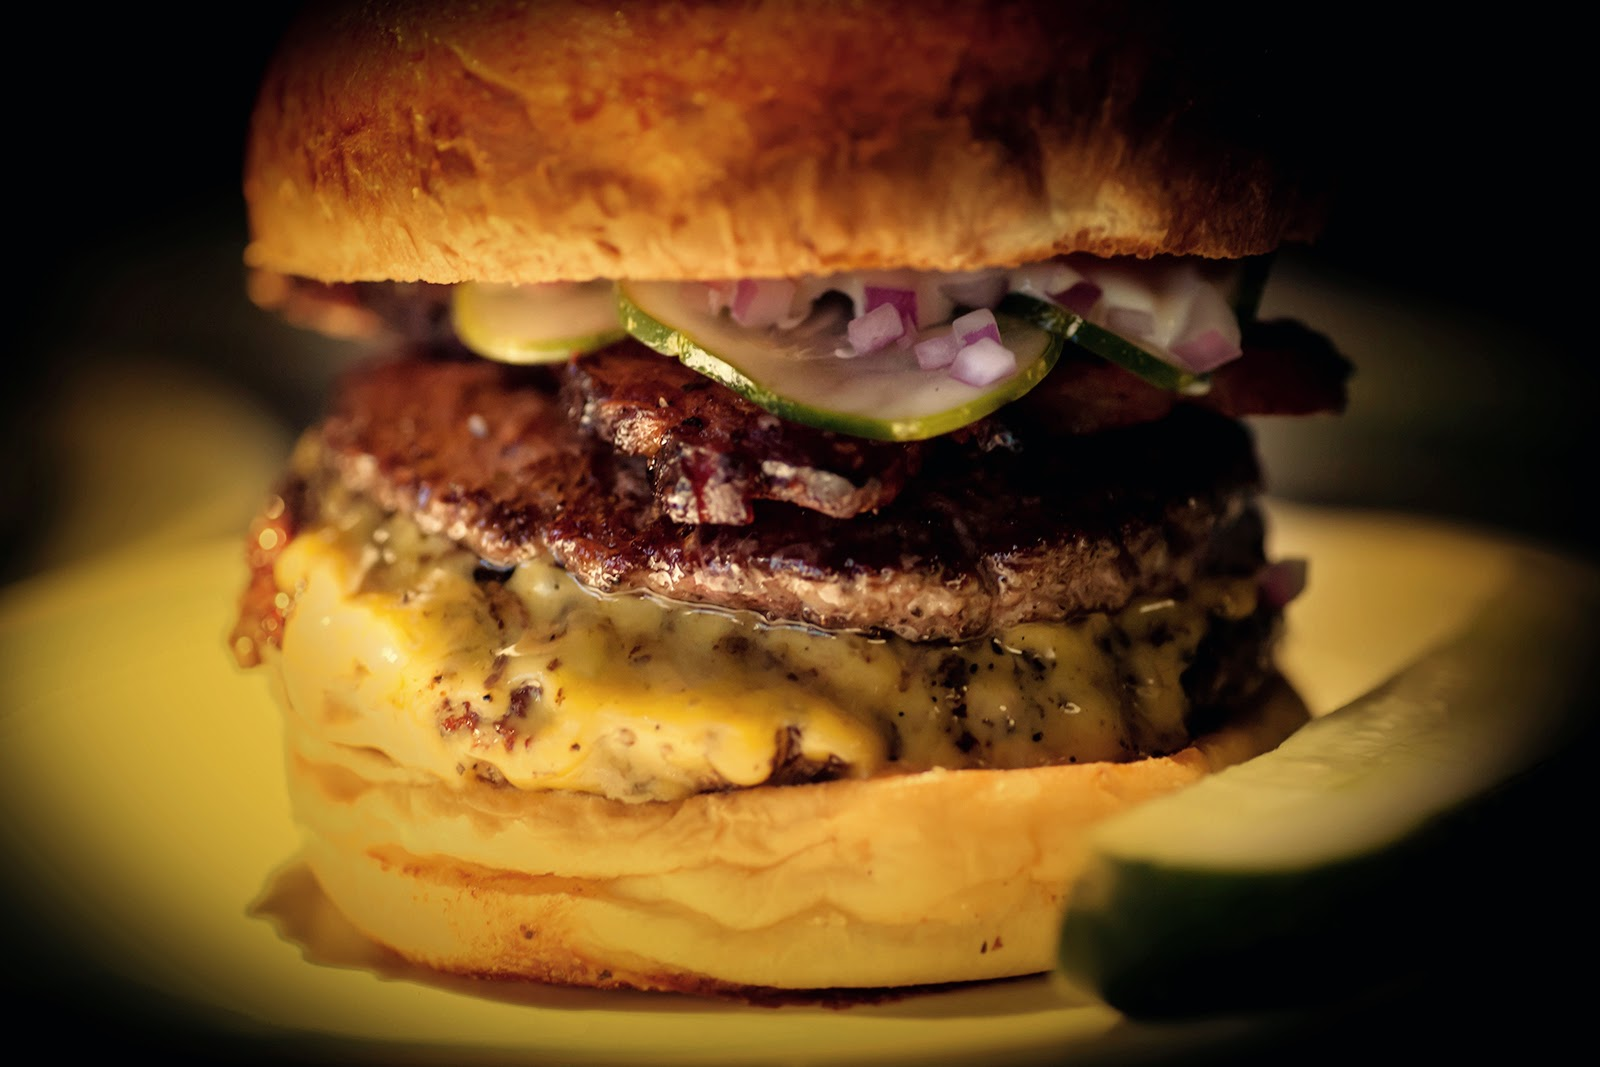 Chicago: The best burger you've ever had